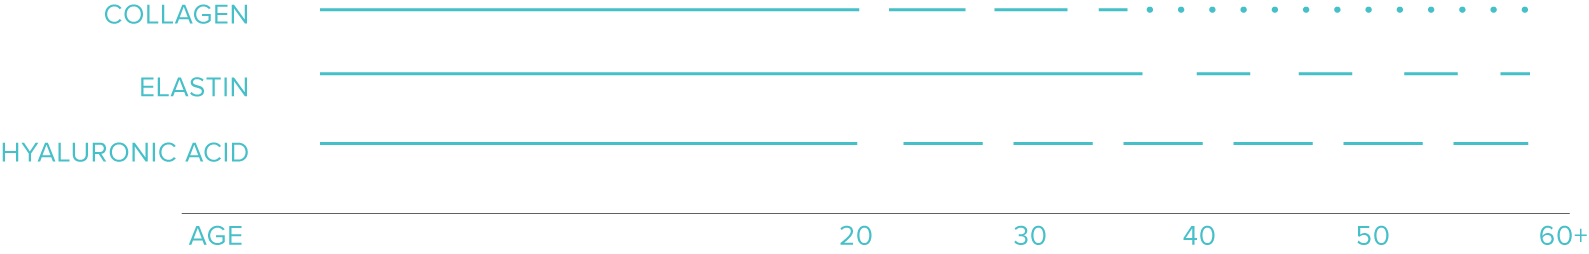 Diagram showing how skin ages over time